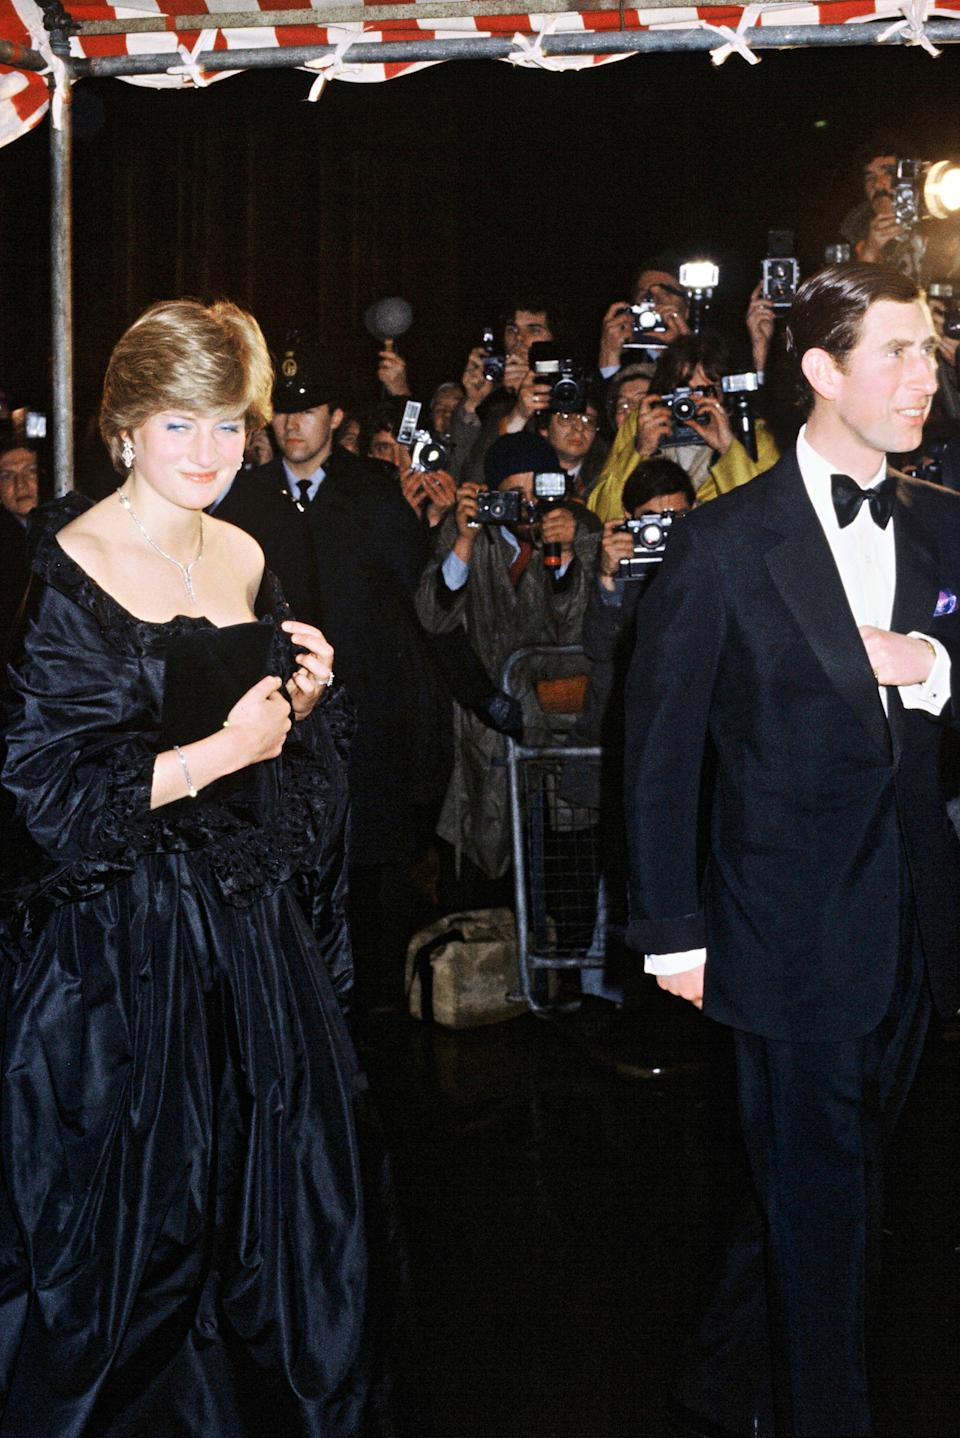 Lady Diana Spencer, later to become Diana, Princess of Wales, in an Emanuel black dress attending her first official engagement with Prince Charles in March 1981. (PA)